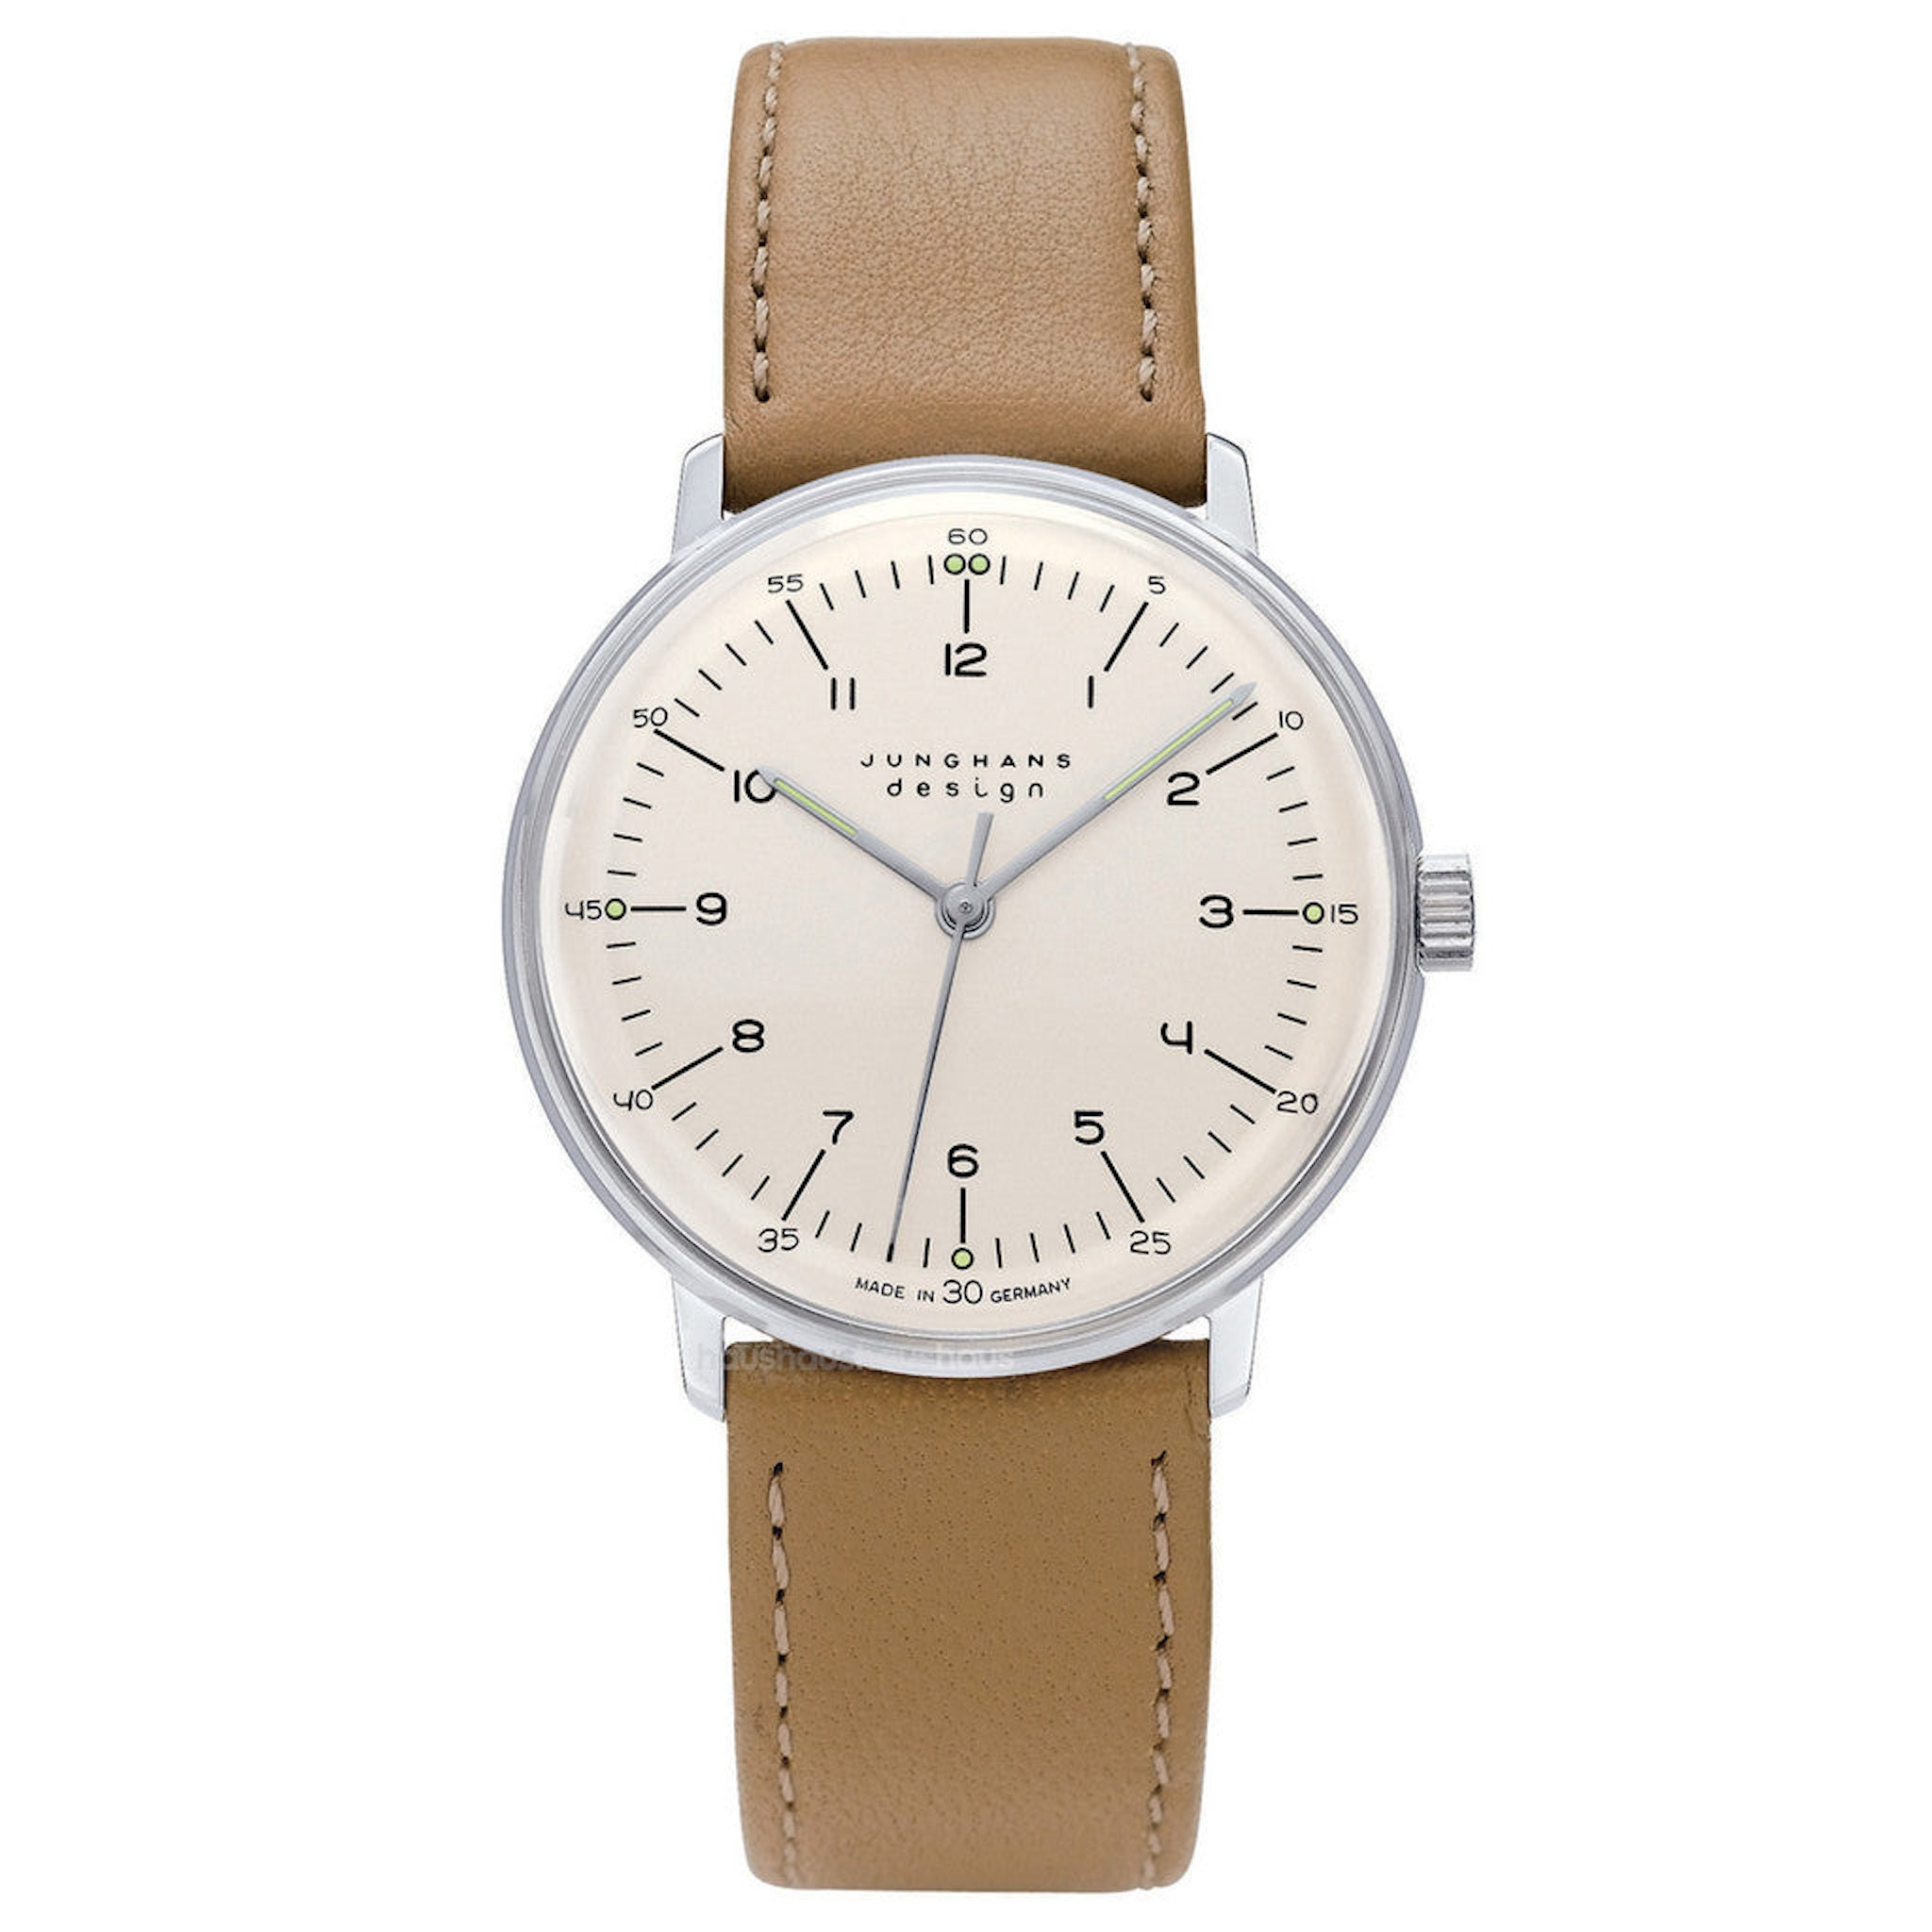 Max Bill 027/3701.00 Handwinding watch by Junghans